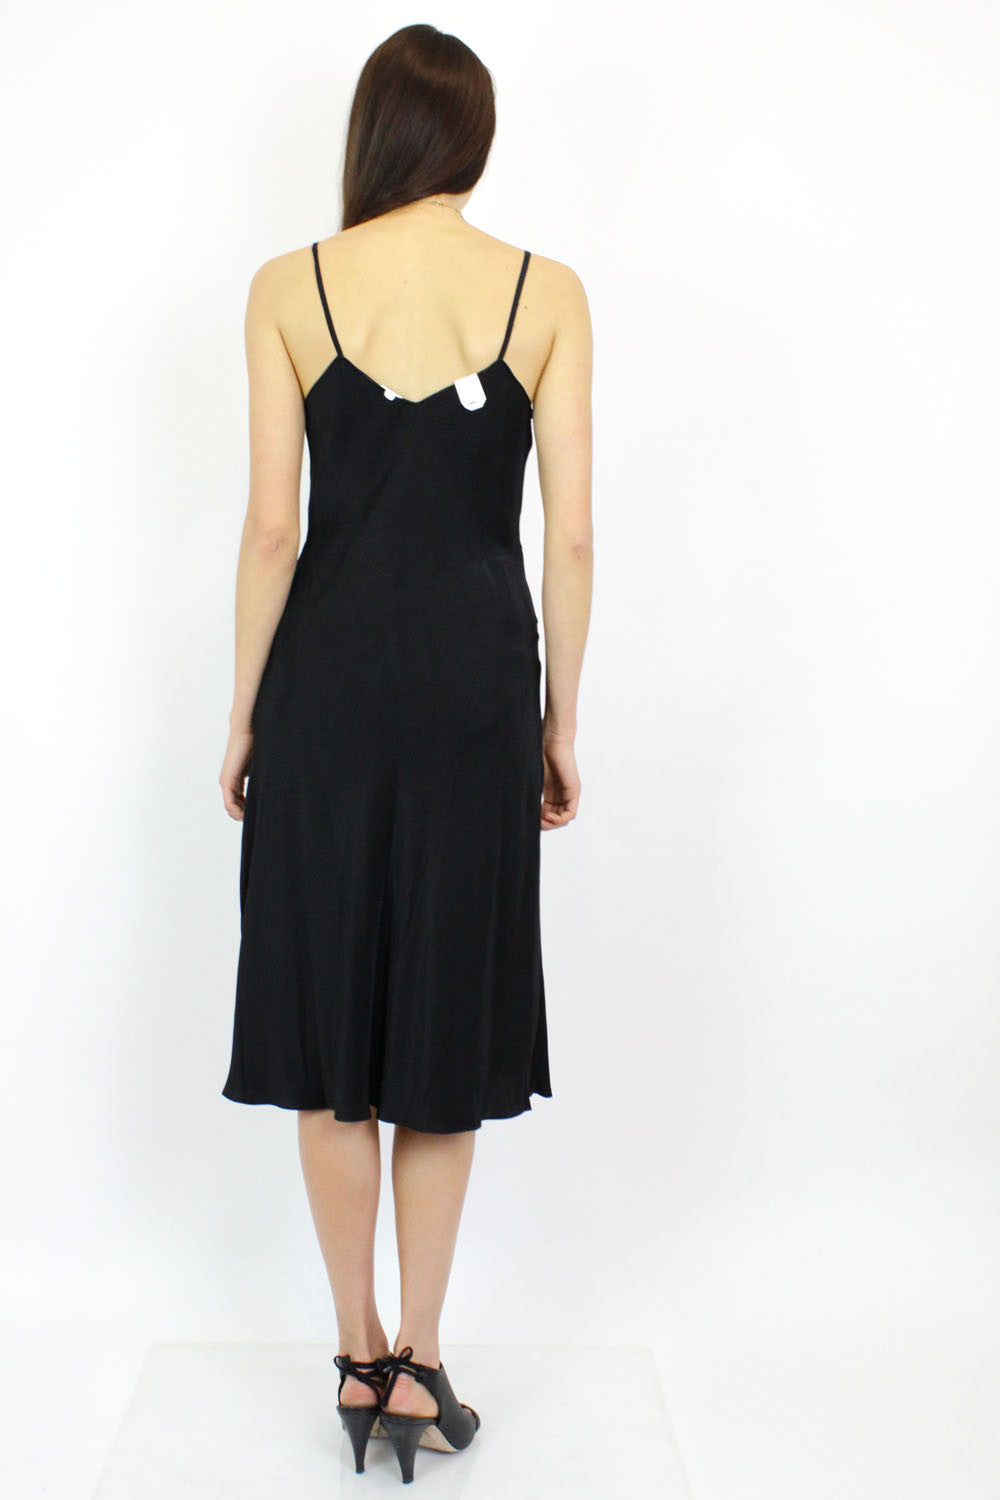 Embroidered Black Slipdress S